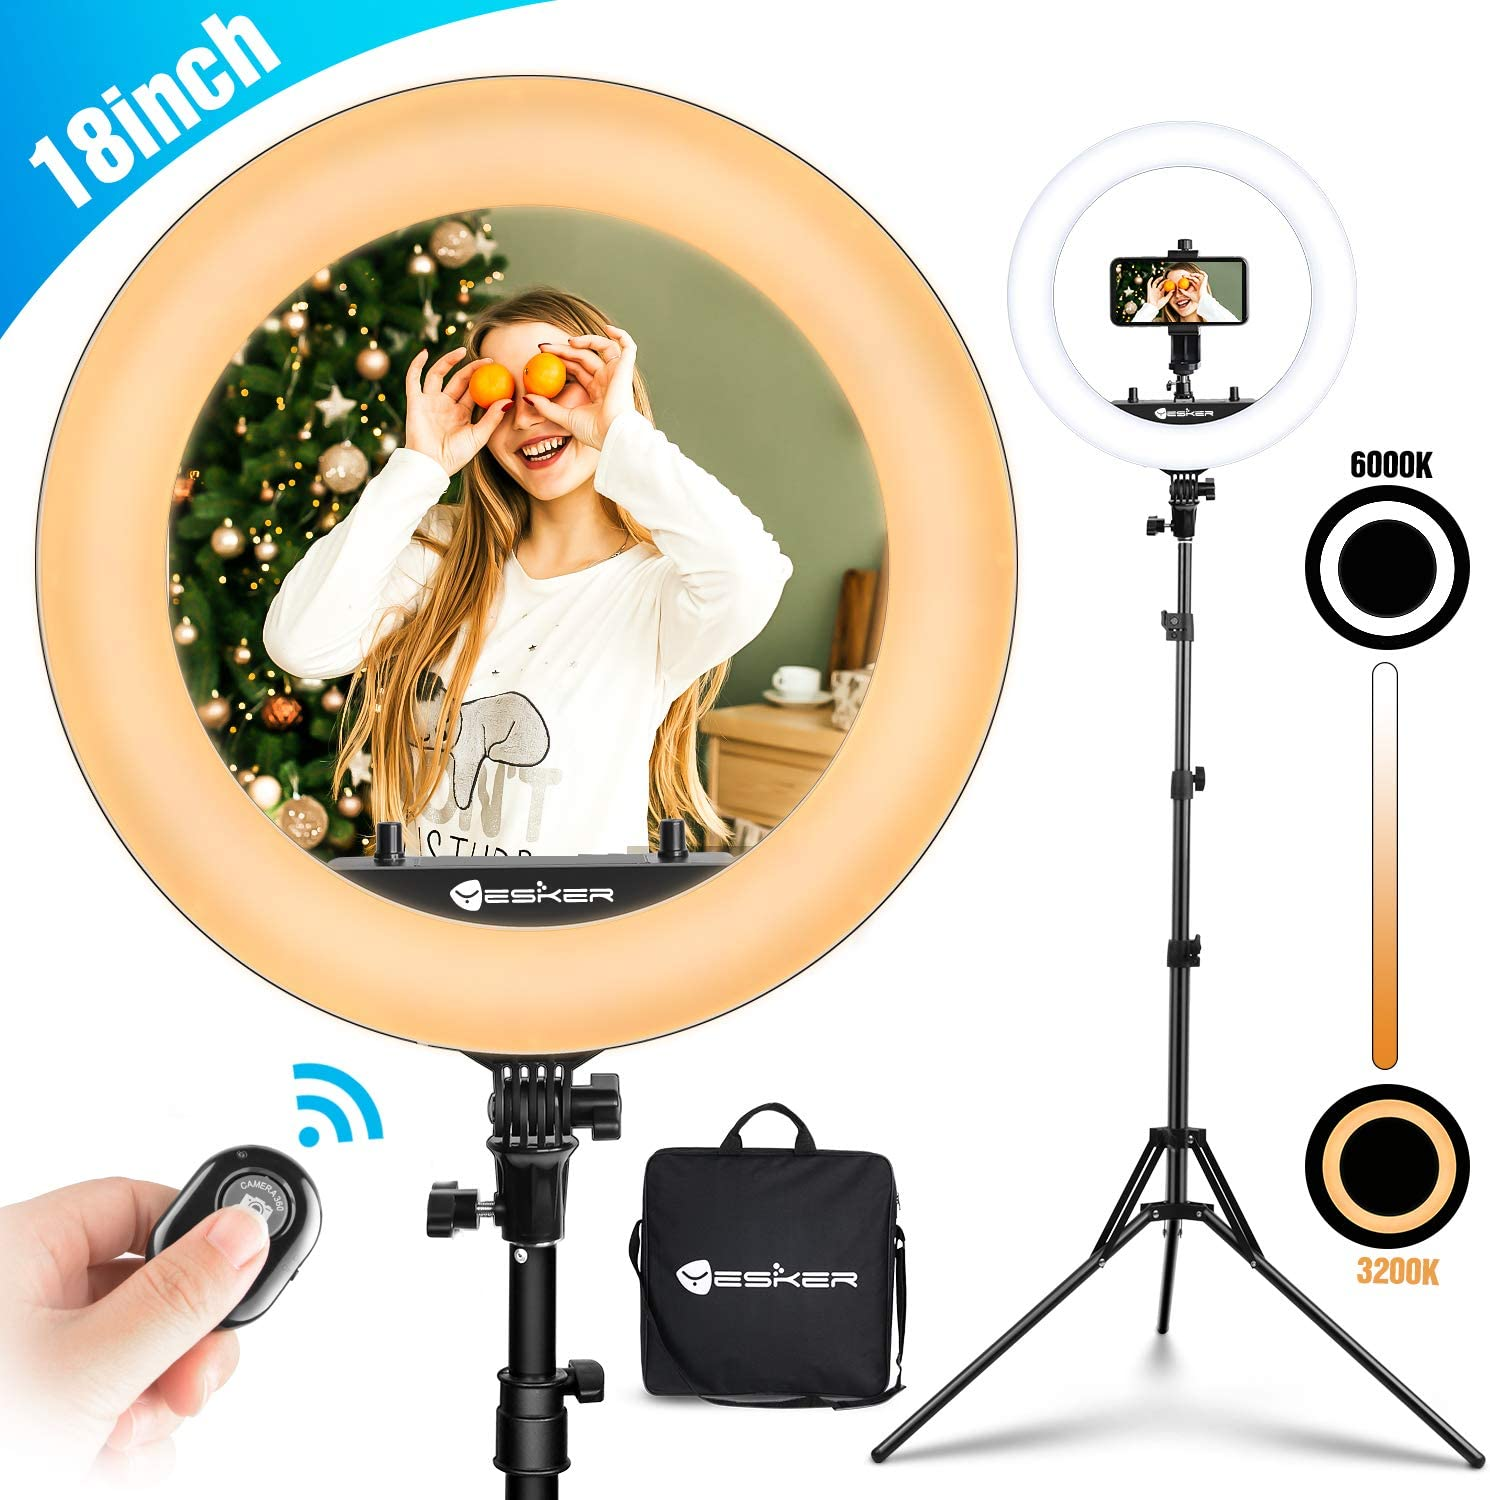 Yesker Ring Light 18 inch with Tripod Stand Ringlight Kit Dimmable 6000K/3200K Circle Lighting Phone Holder Bluetooth Remote Carry Bag for Zoom TikTok Makeup Video Photography Blogging Portrait